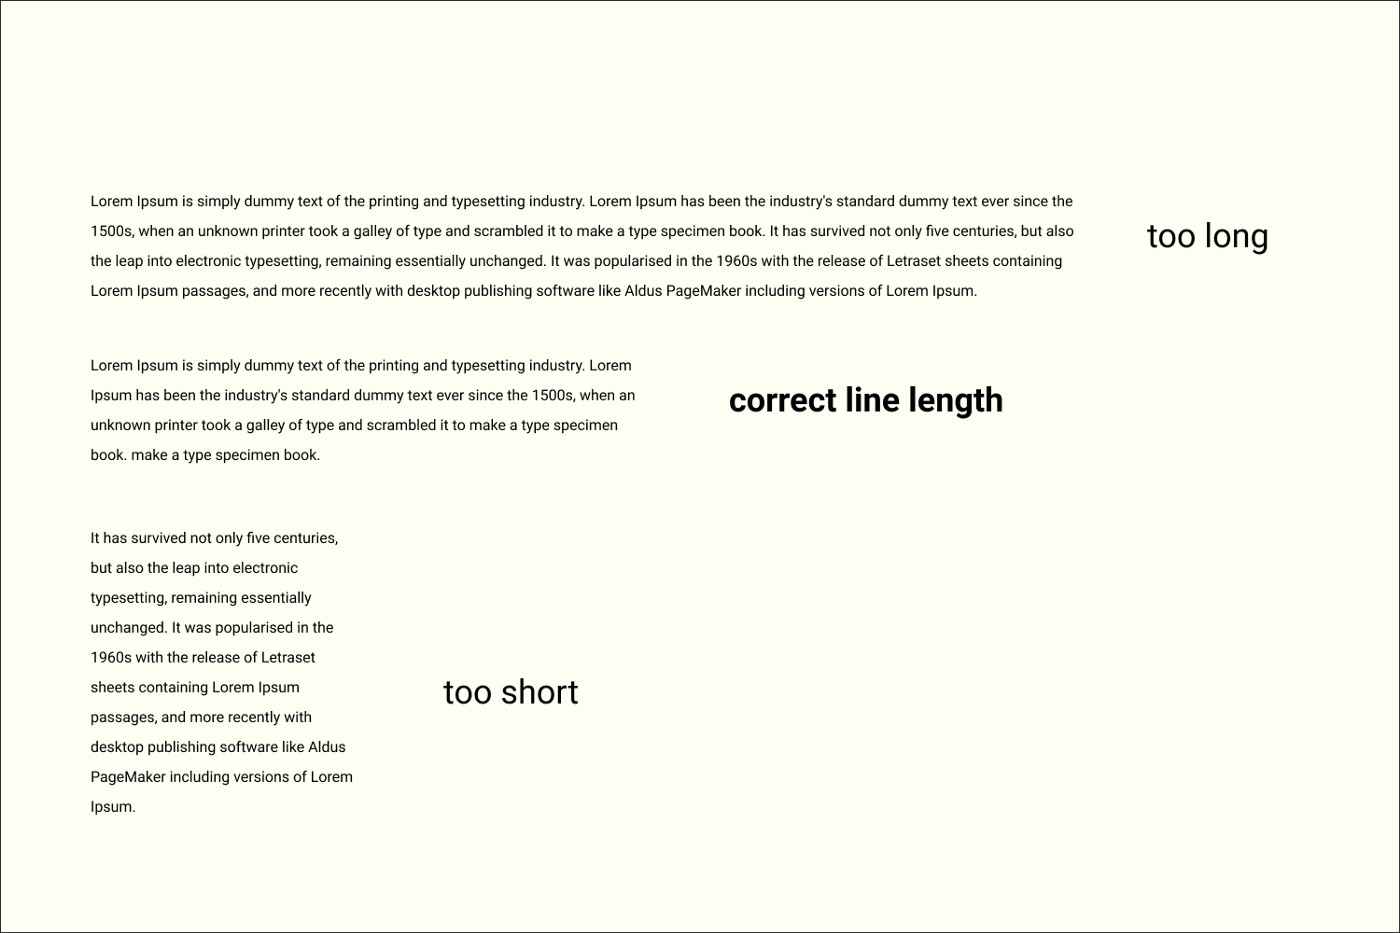 Image showing proper line length for a block of text